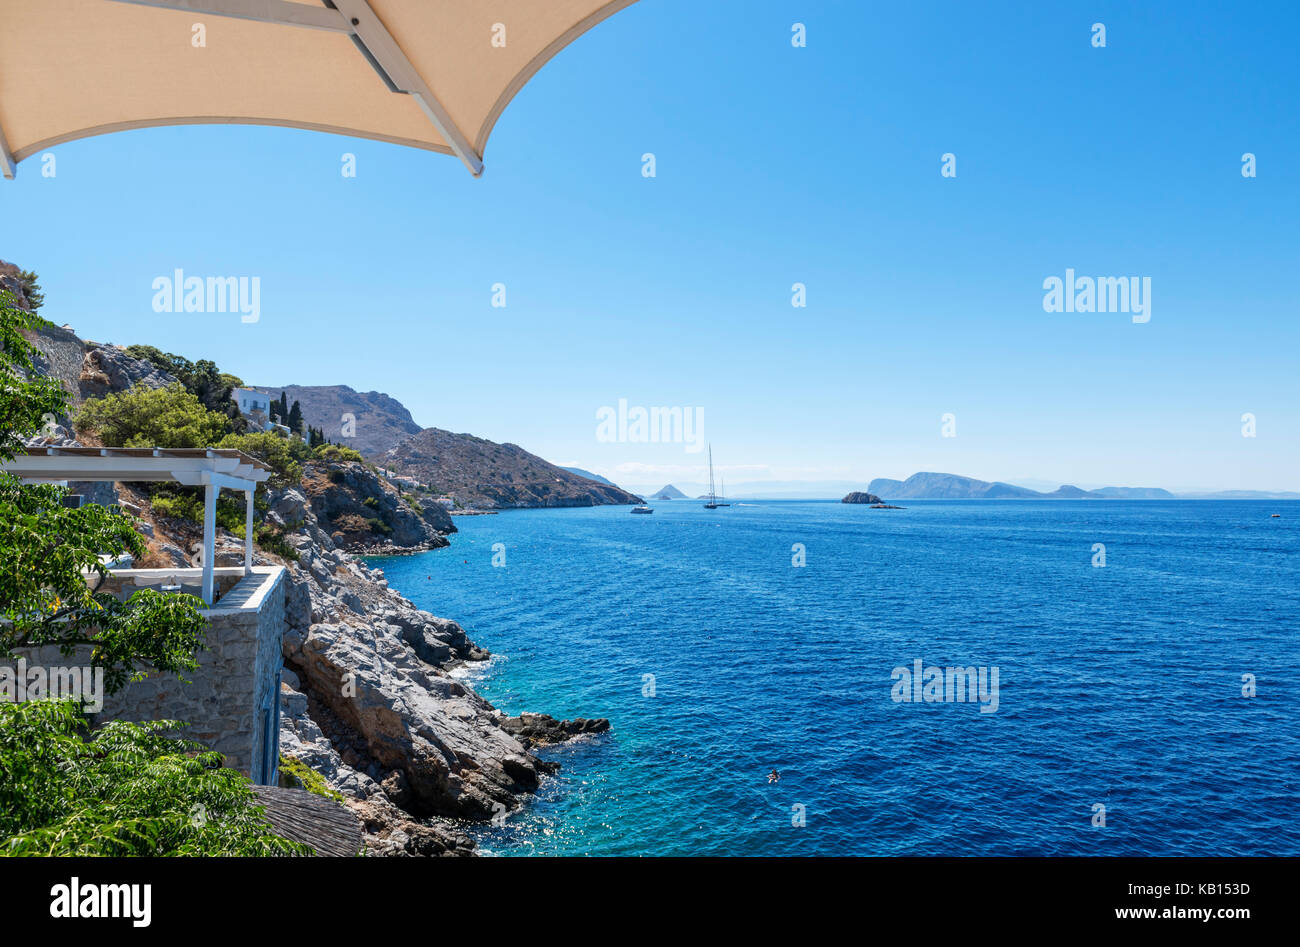 North coast to the west of Hydra Town, Hydra, Saronic Islands, Greece - Stock Image